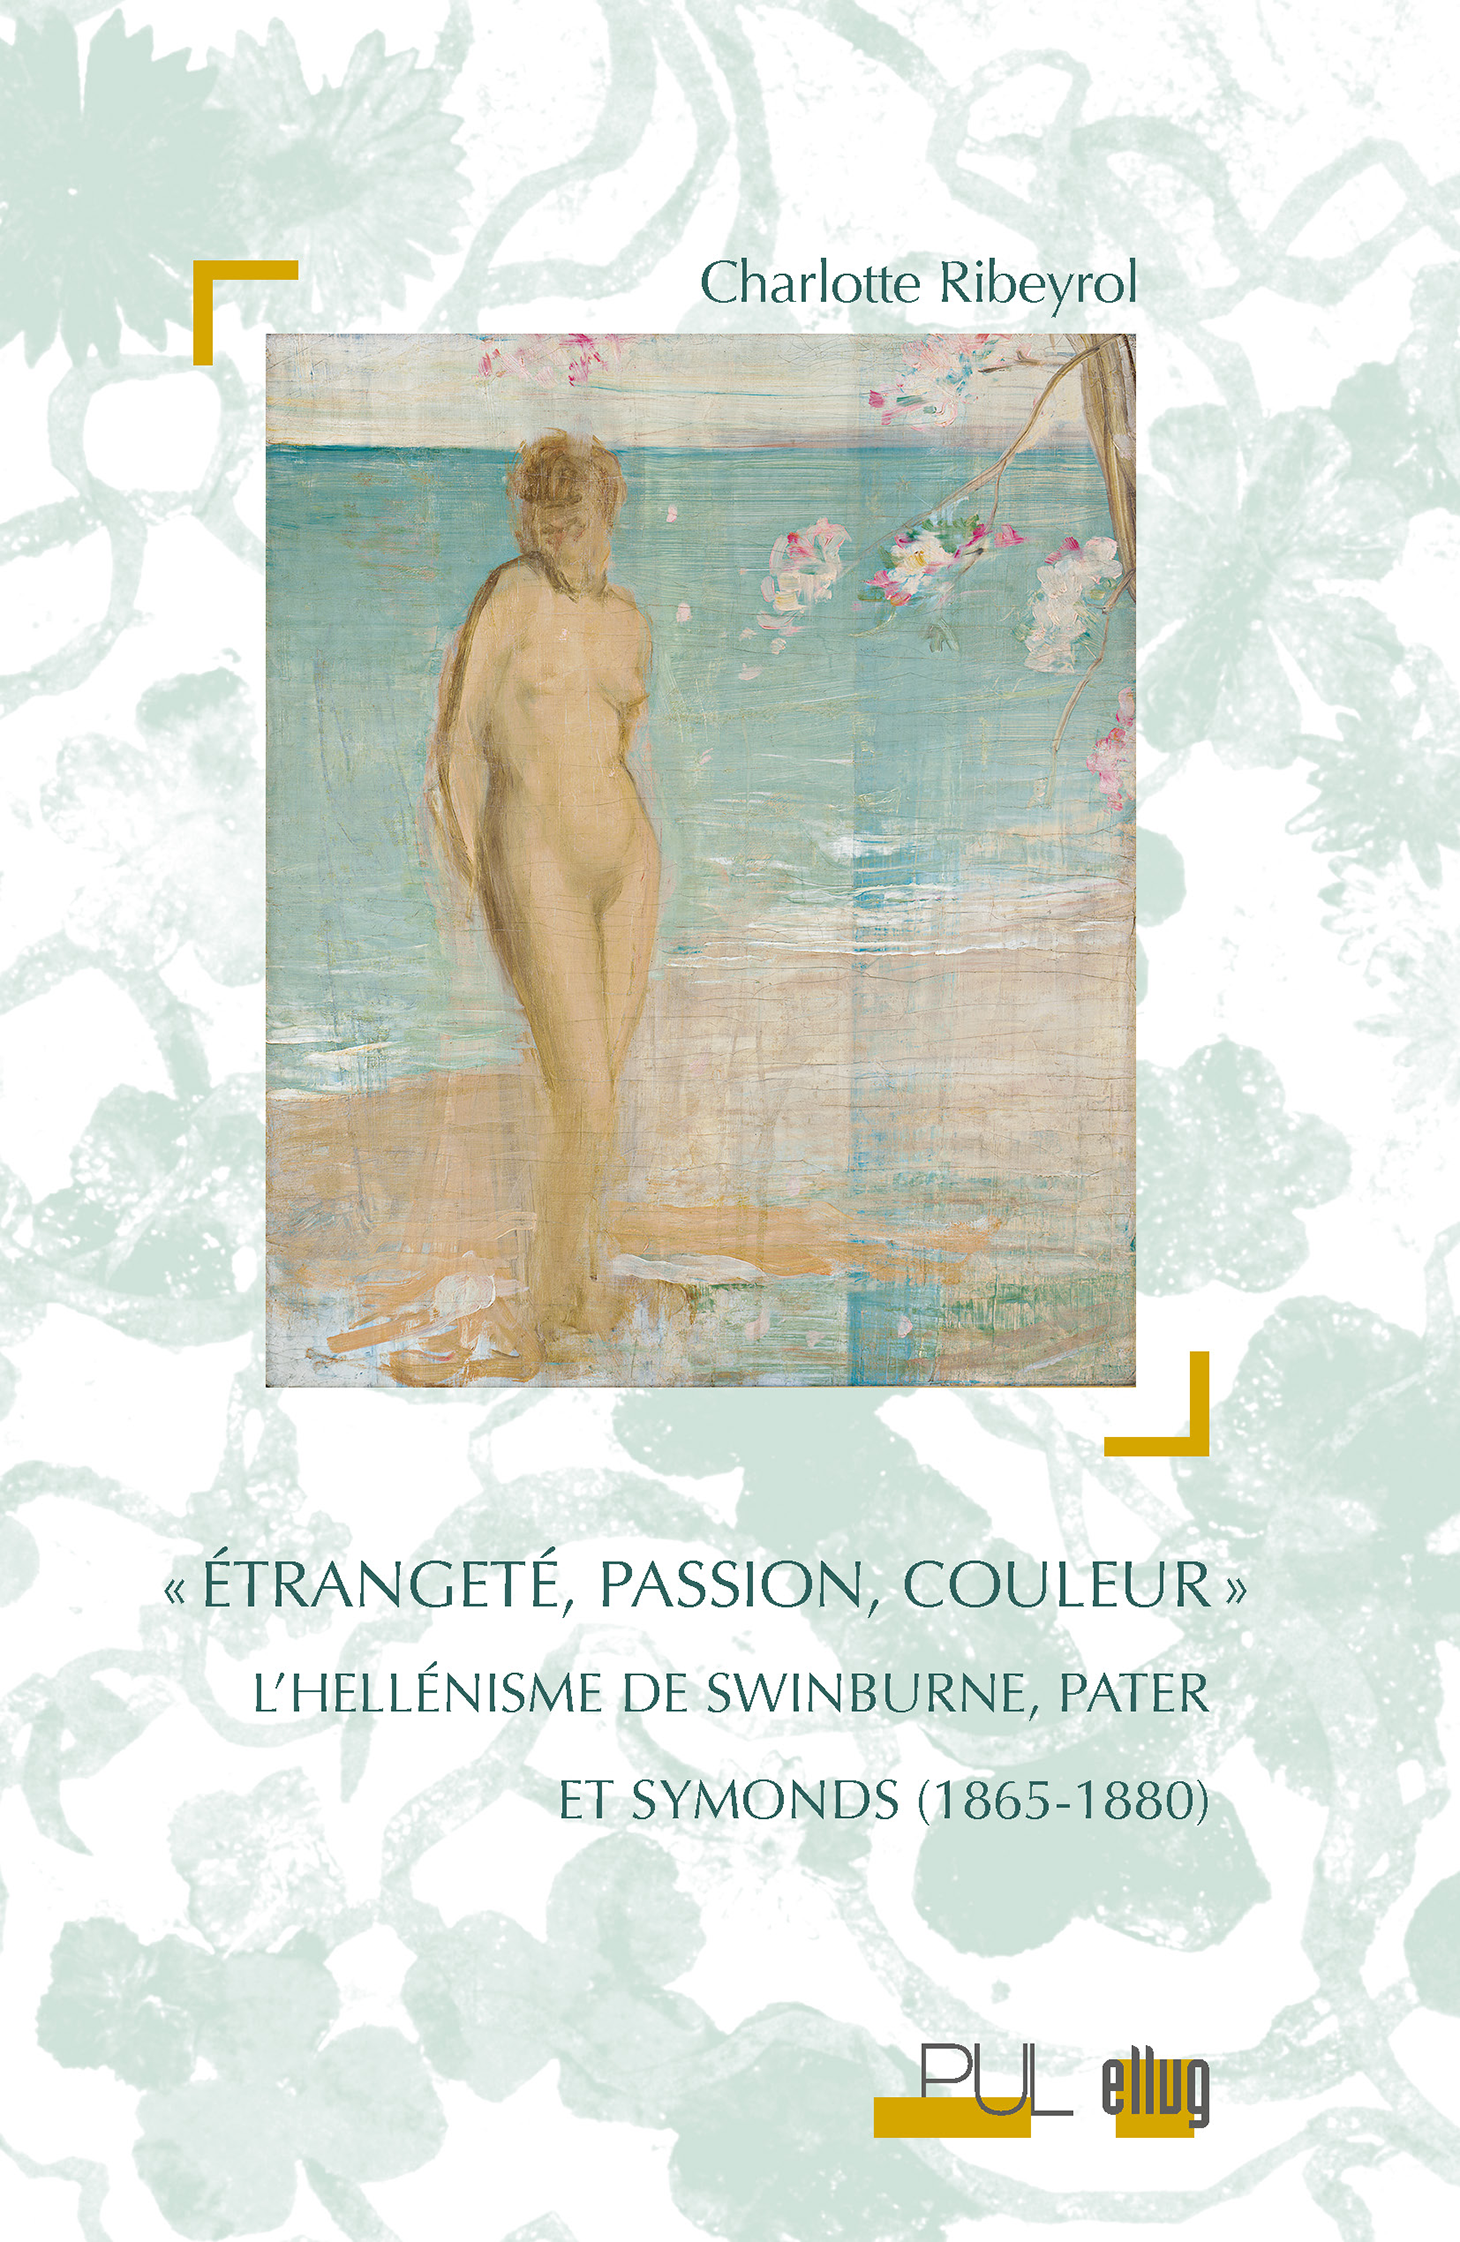 Couverture Etrangeté, passion, couleur - Swinburne, Pater et Symonds